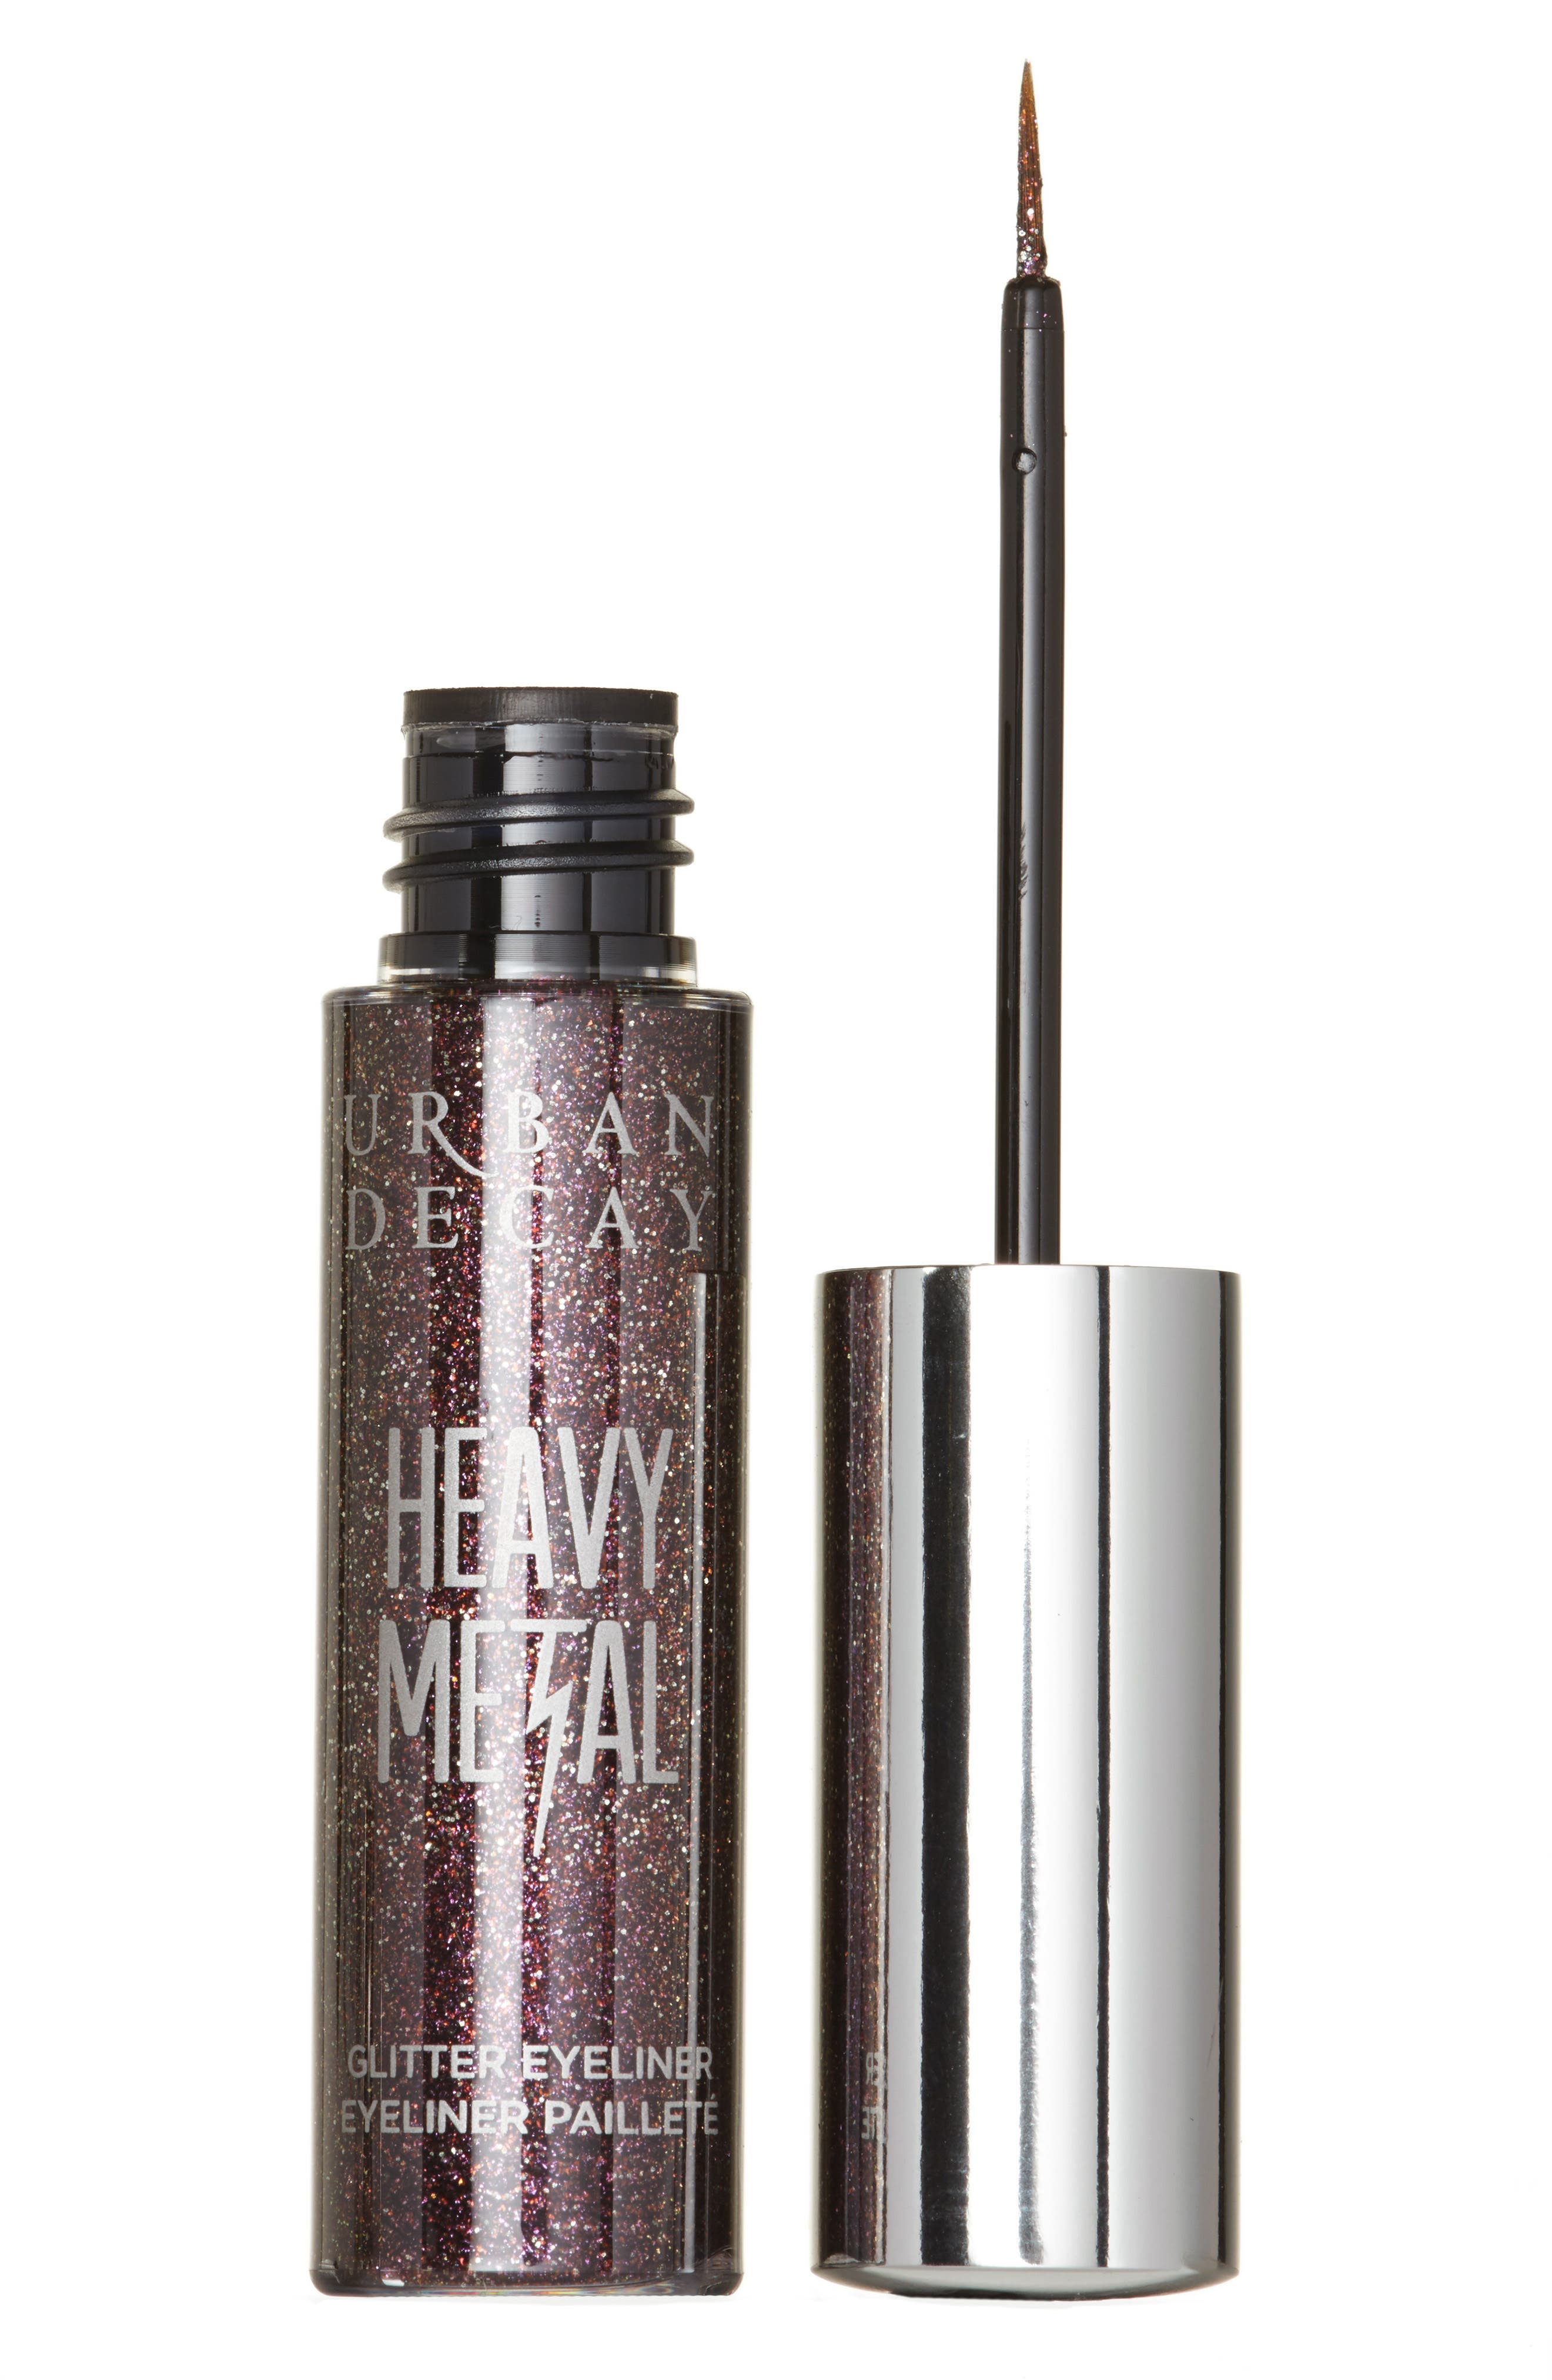 Heavy Metal Glitter Eyeliner,                             Main thumbnail 1, color,                             Stix And Bones